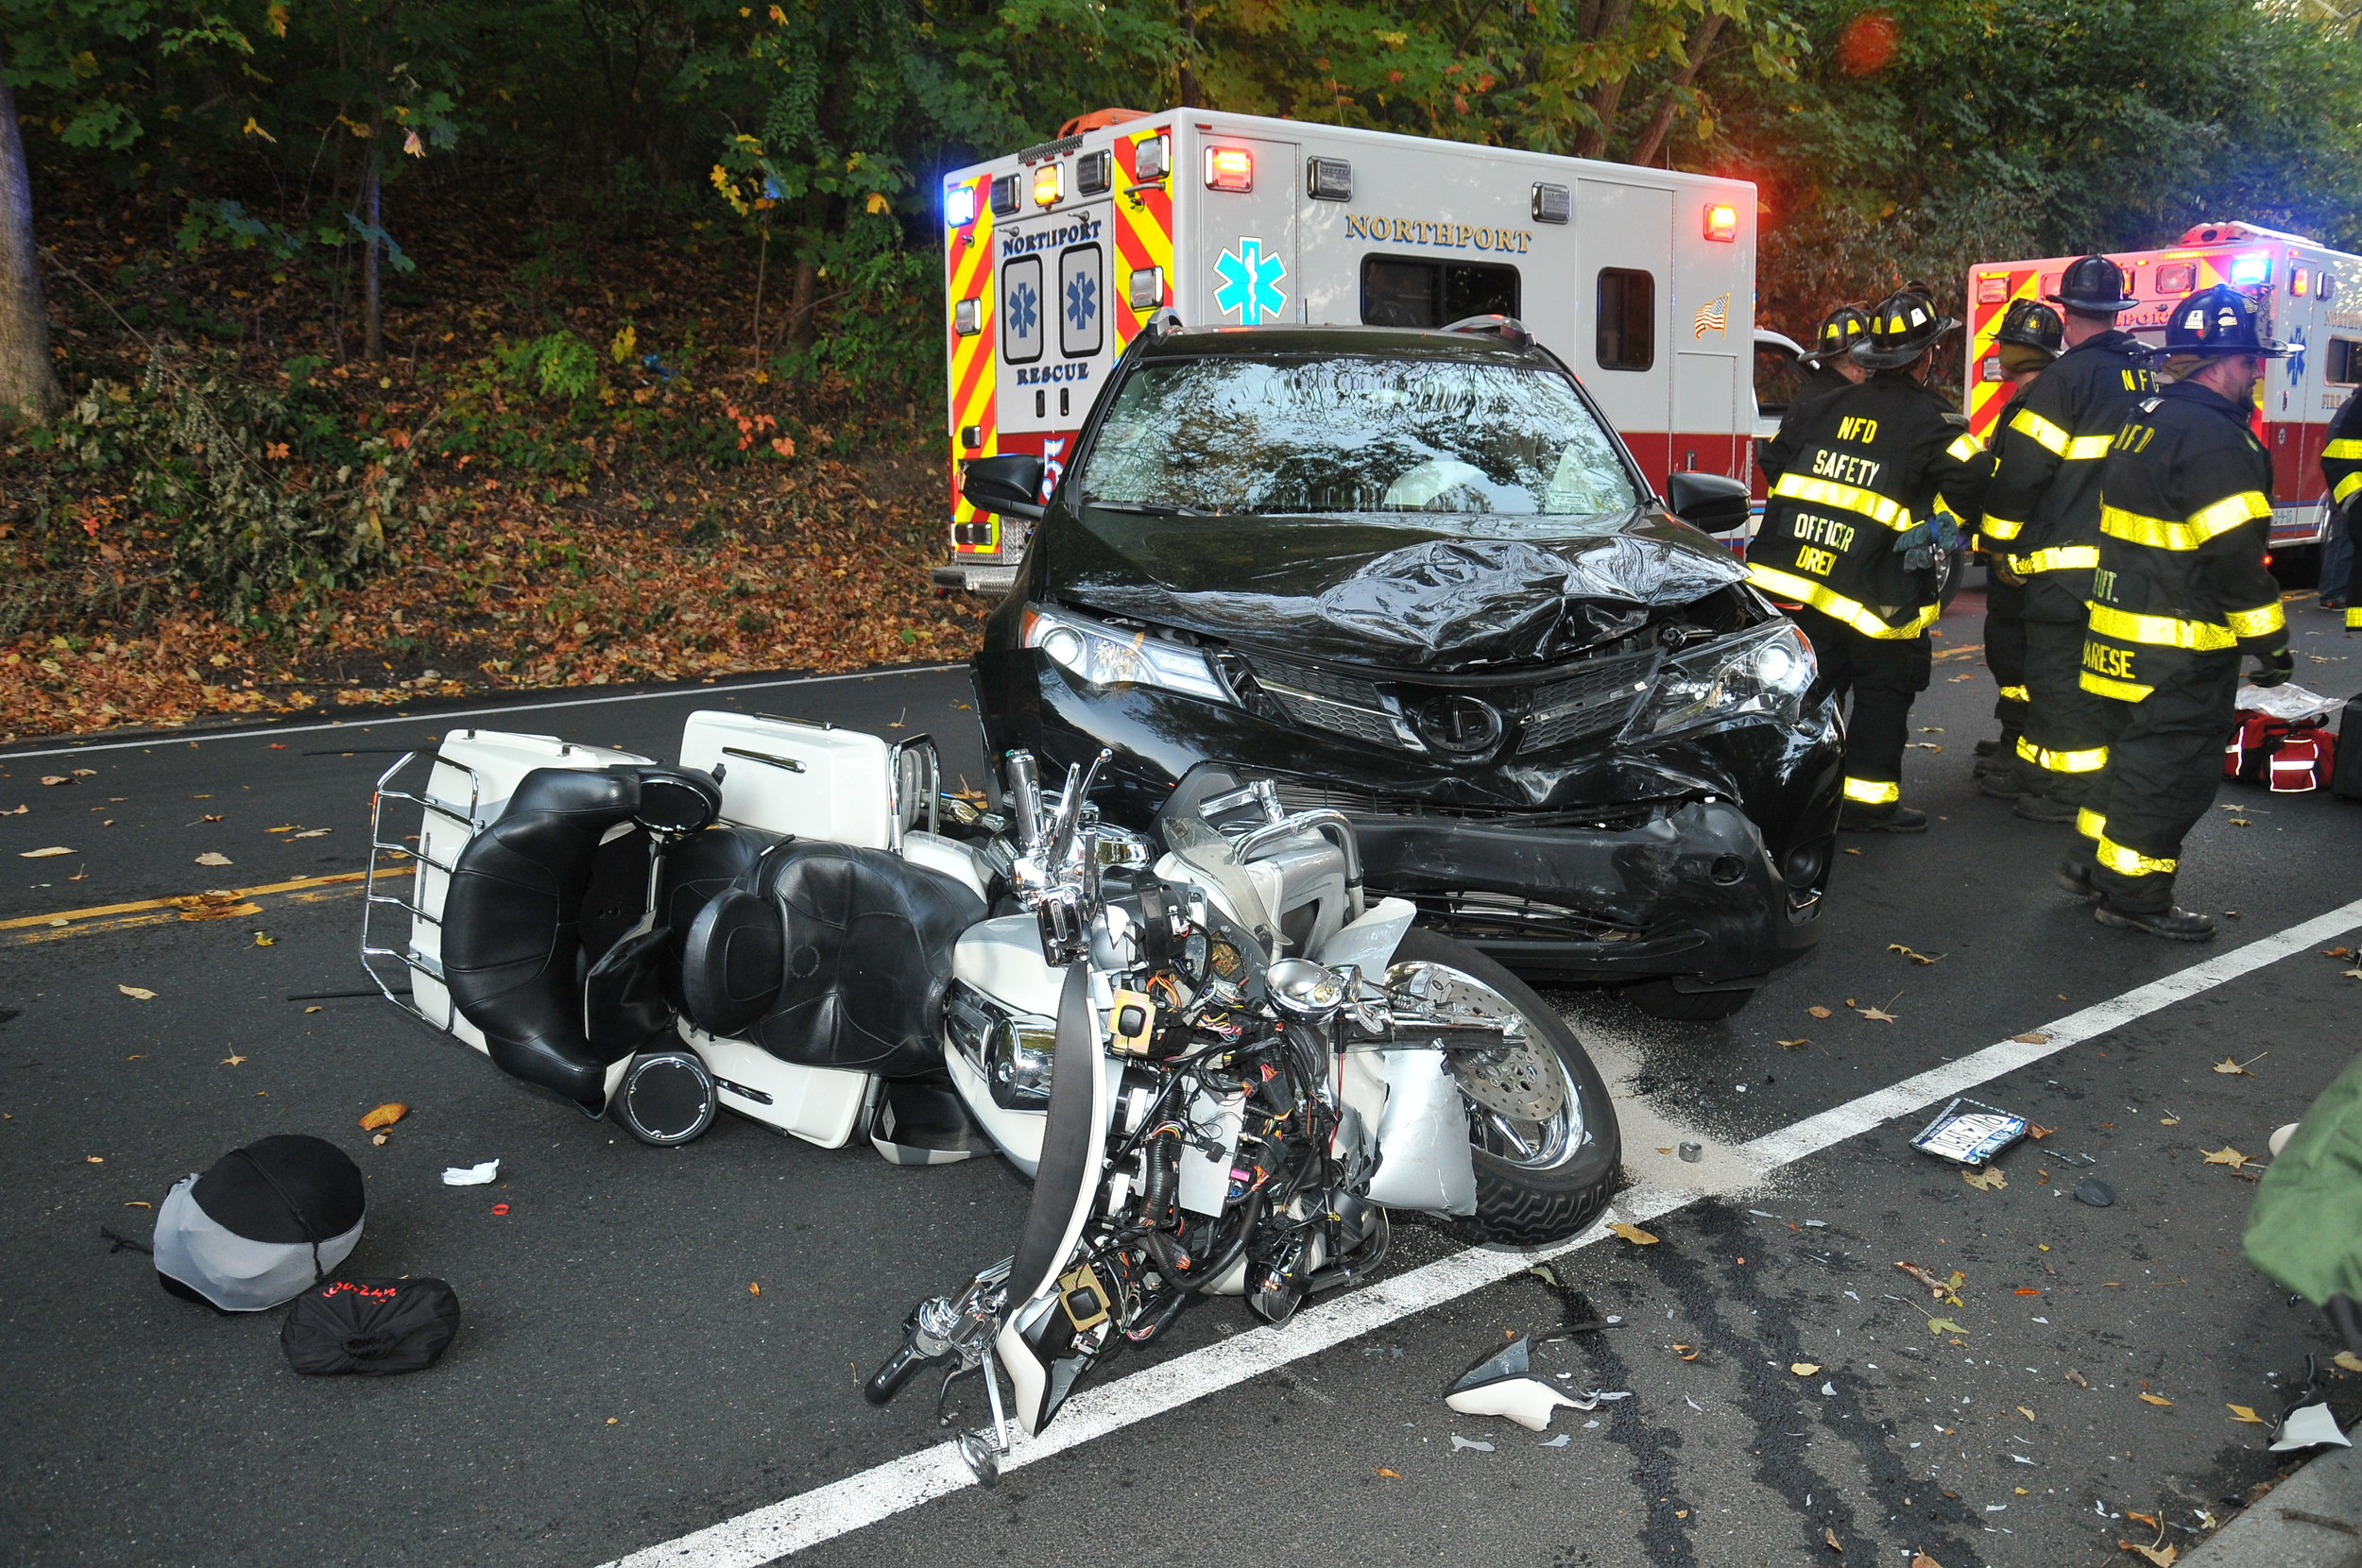 A Floral Park woman was killed in a crash Sunday after she was ejected from the rear of a motorcycle that collided with a car pulling into a driveway on Fort Salonga Road in Northport, Suffolk police said. (Photo / Steve Silverman)